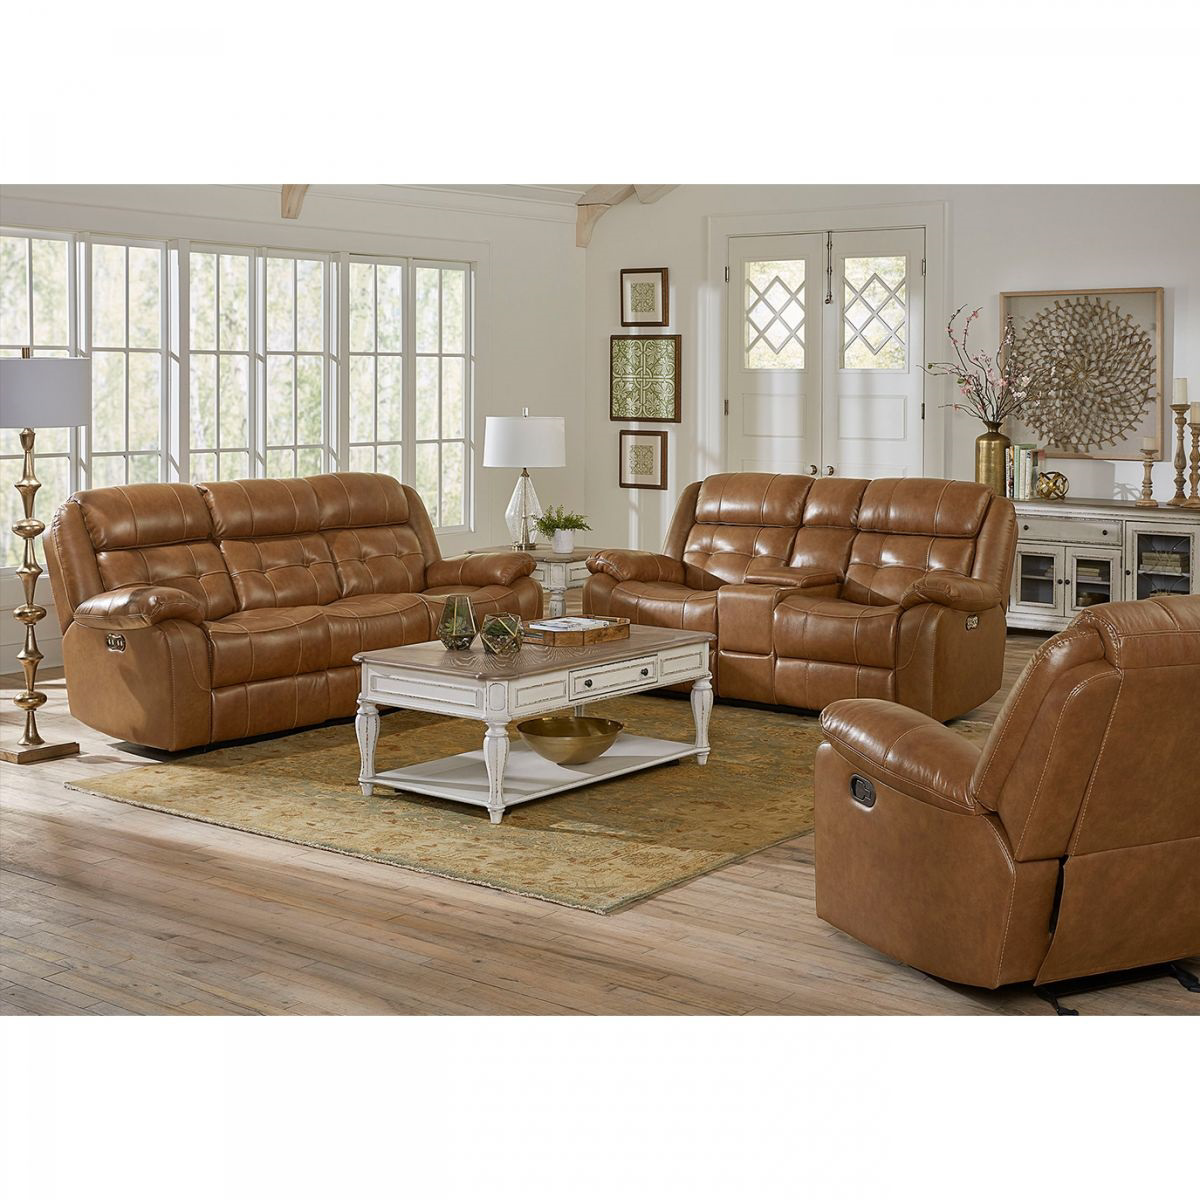 Dual Reclining Sofa With Console   Kmax 2 Toned Dual Reclining Sofa ...